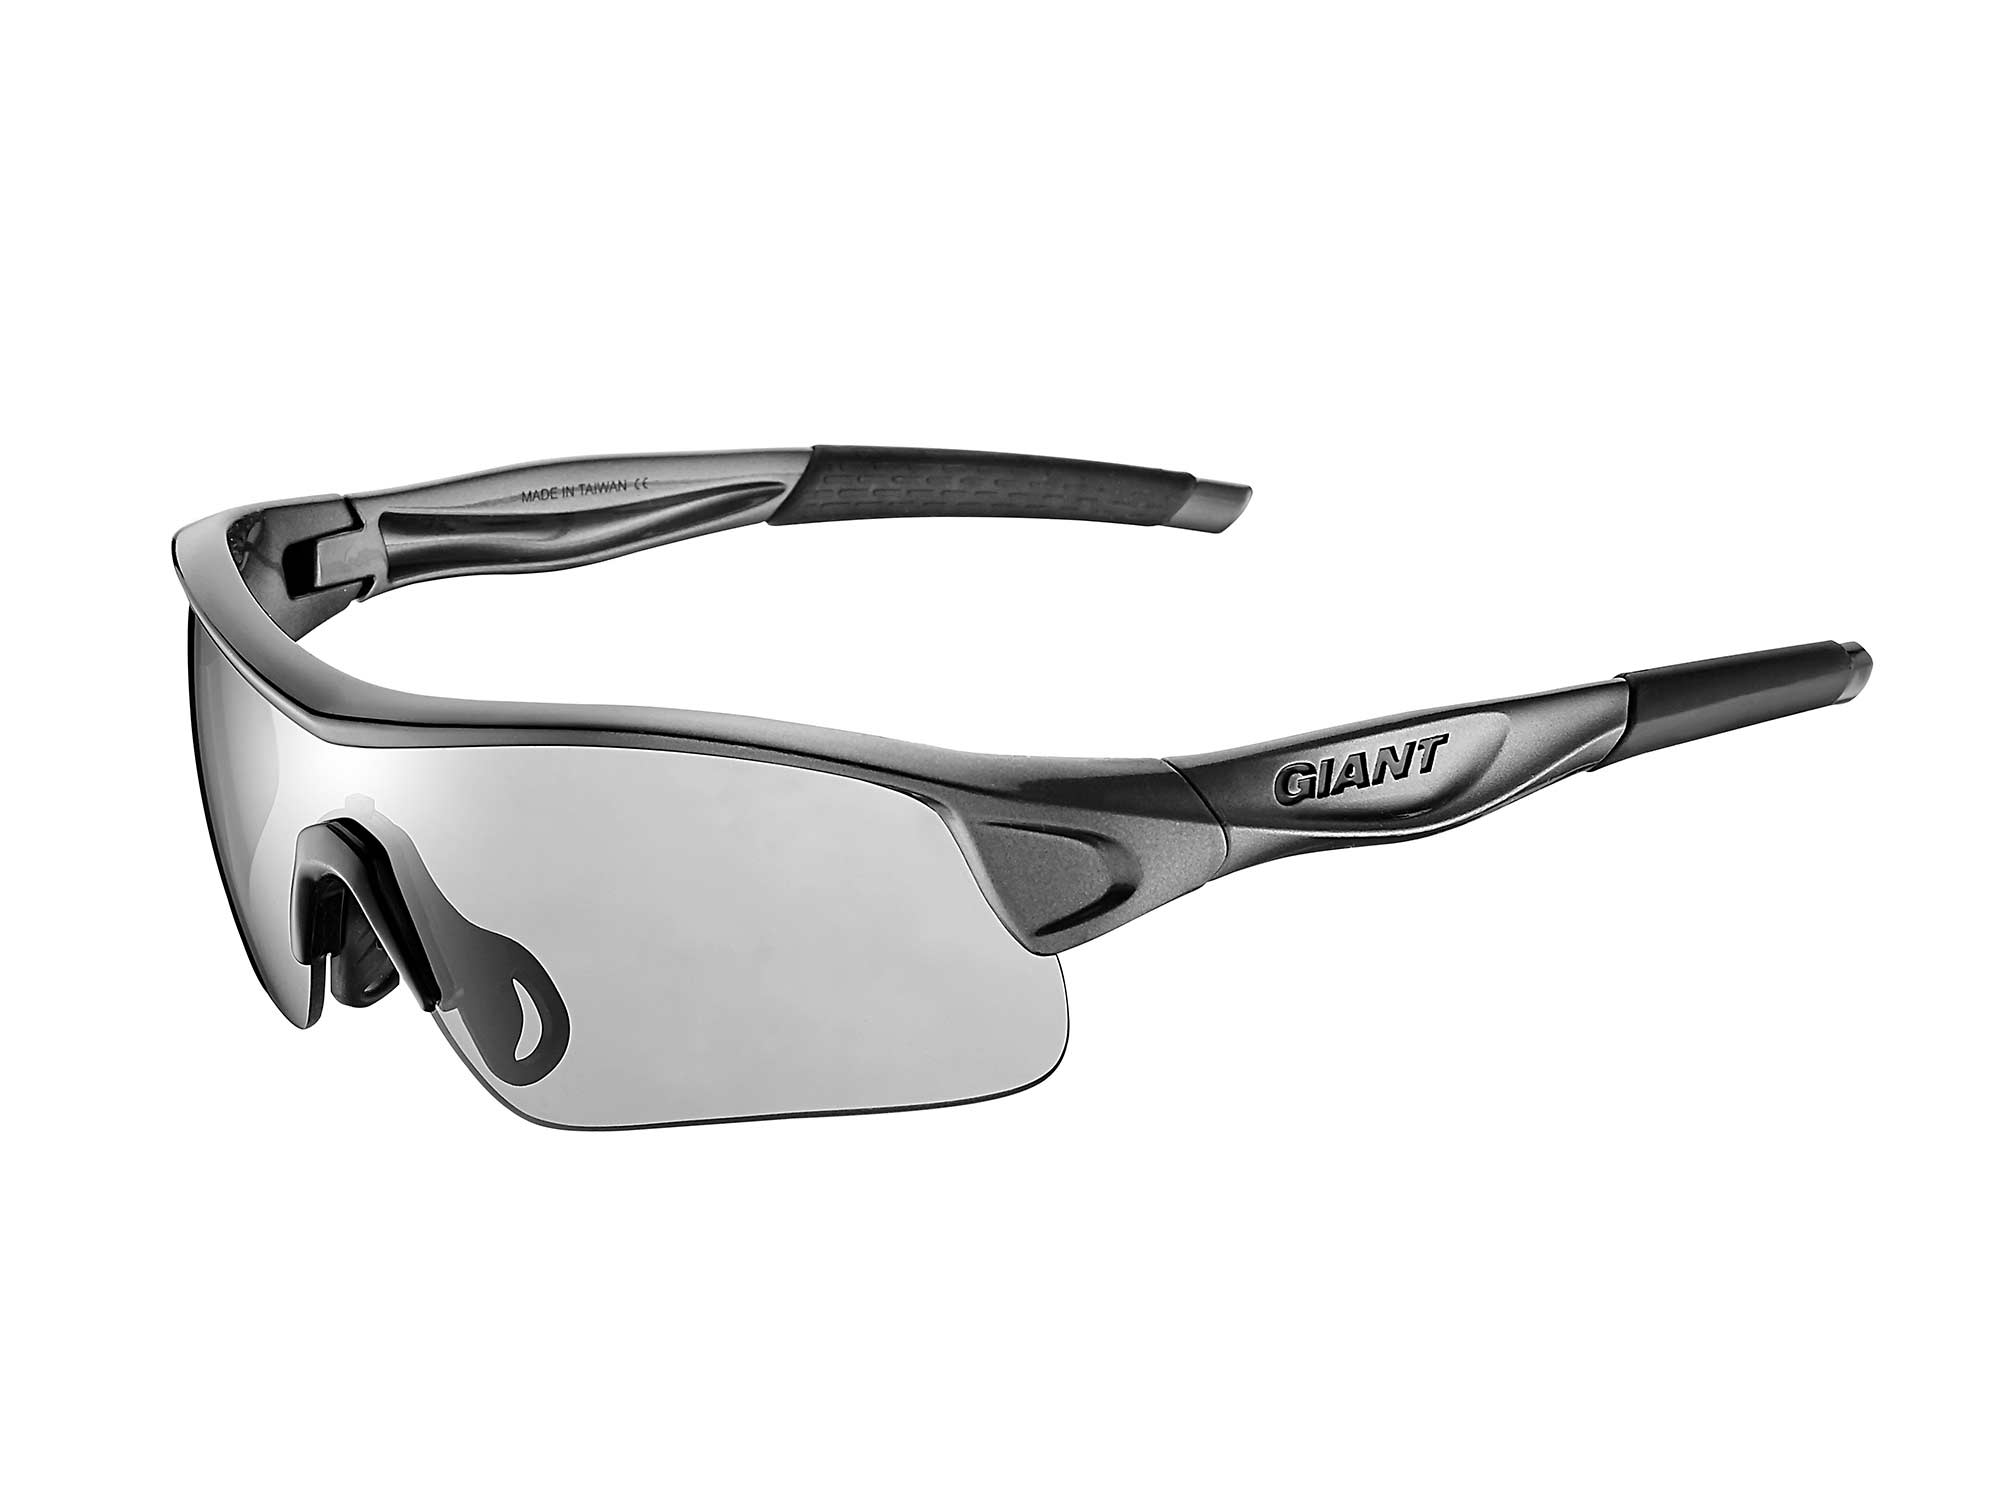 64d41eae7a5 Giant Stratos NXT Varia Sunglasses In Grey And White £89.99